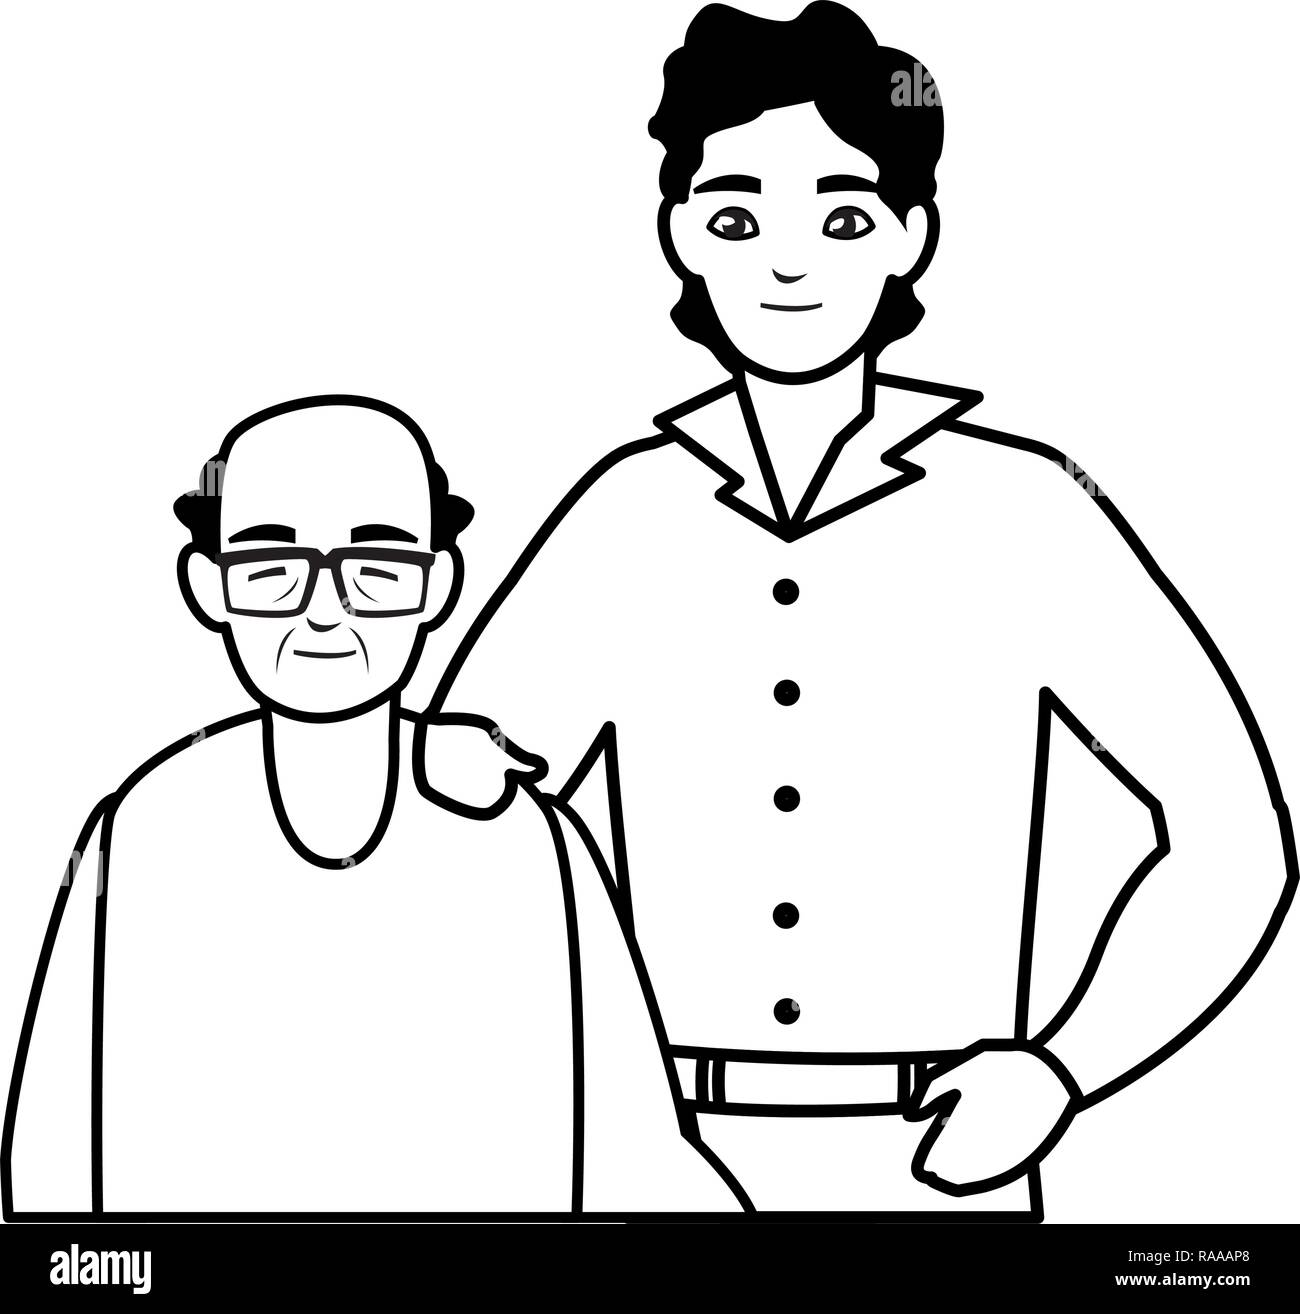 father with son characters vector illustration design - Stock Image